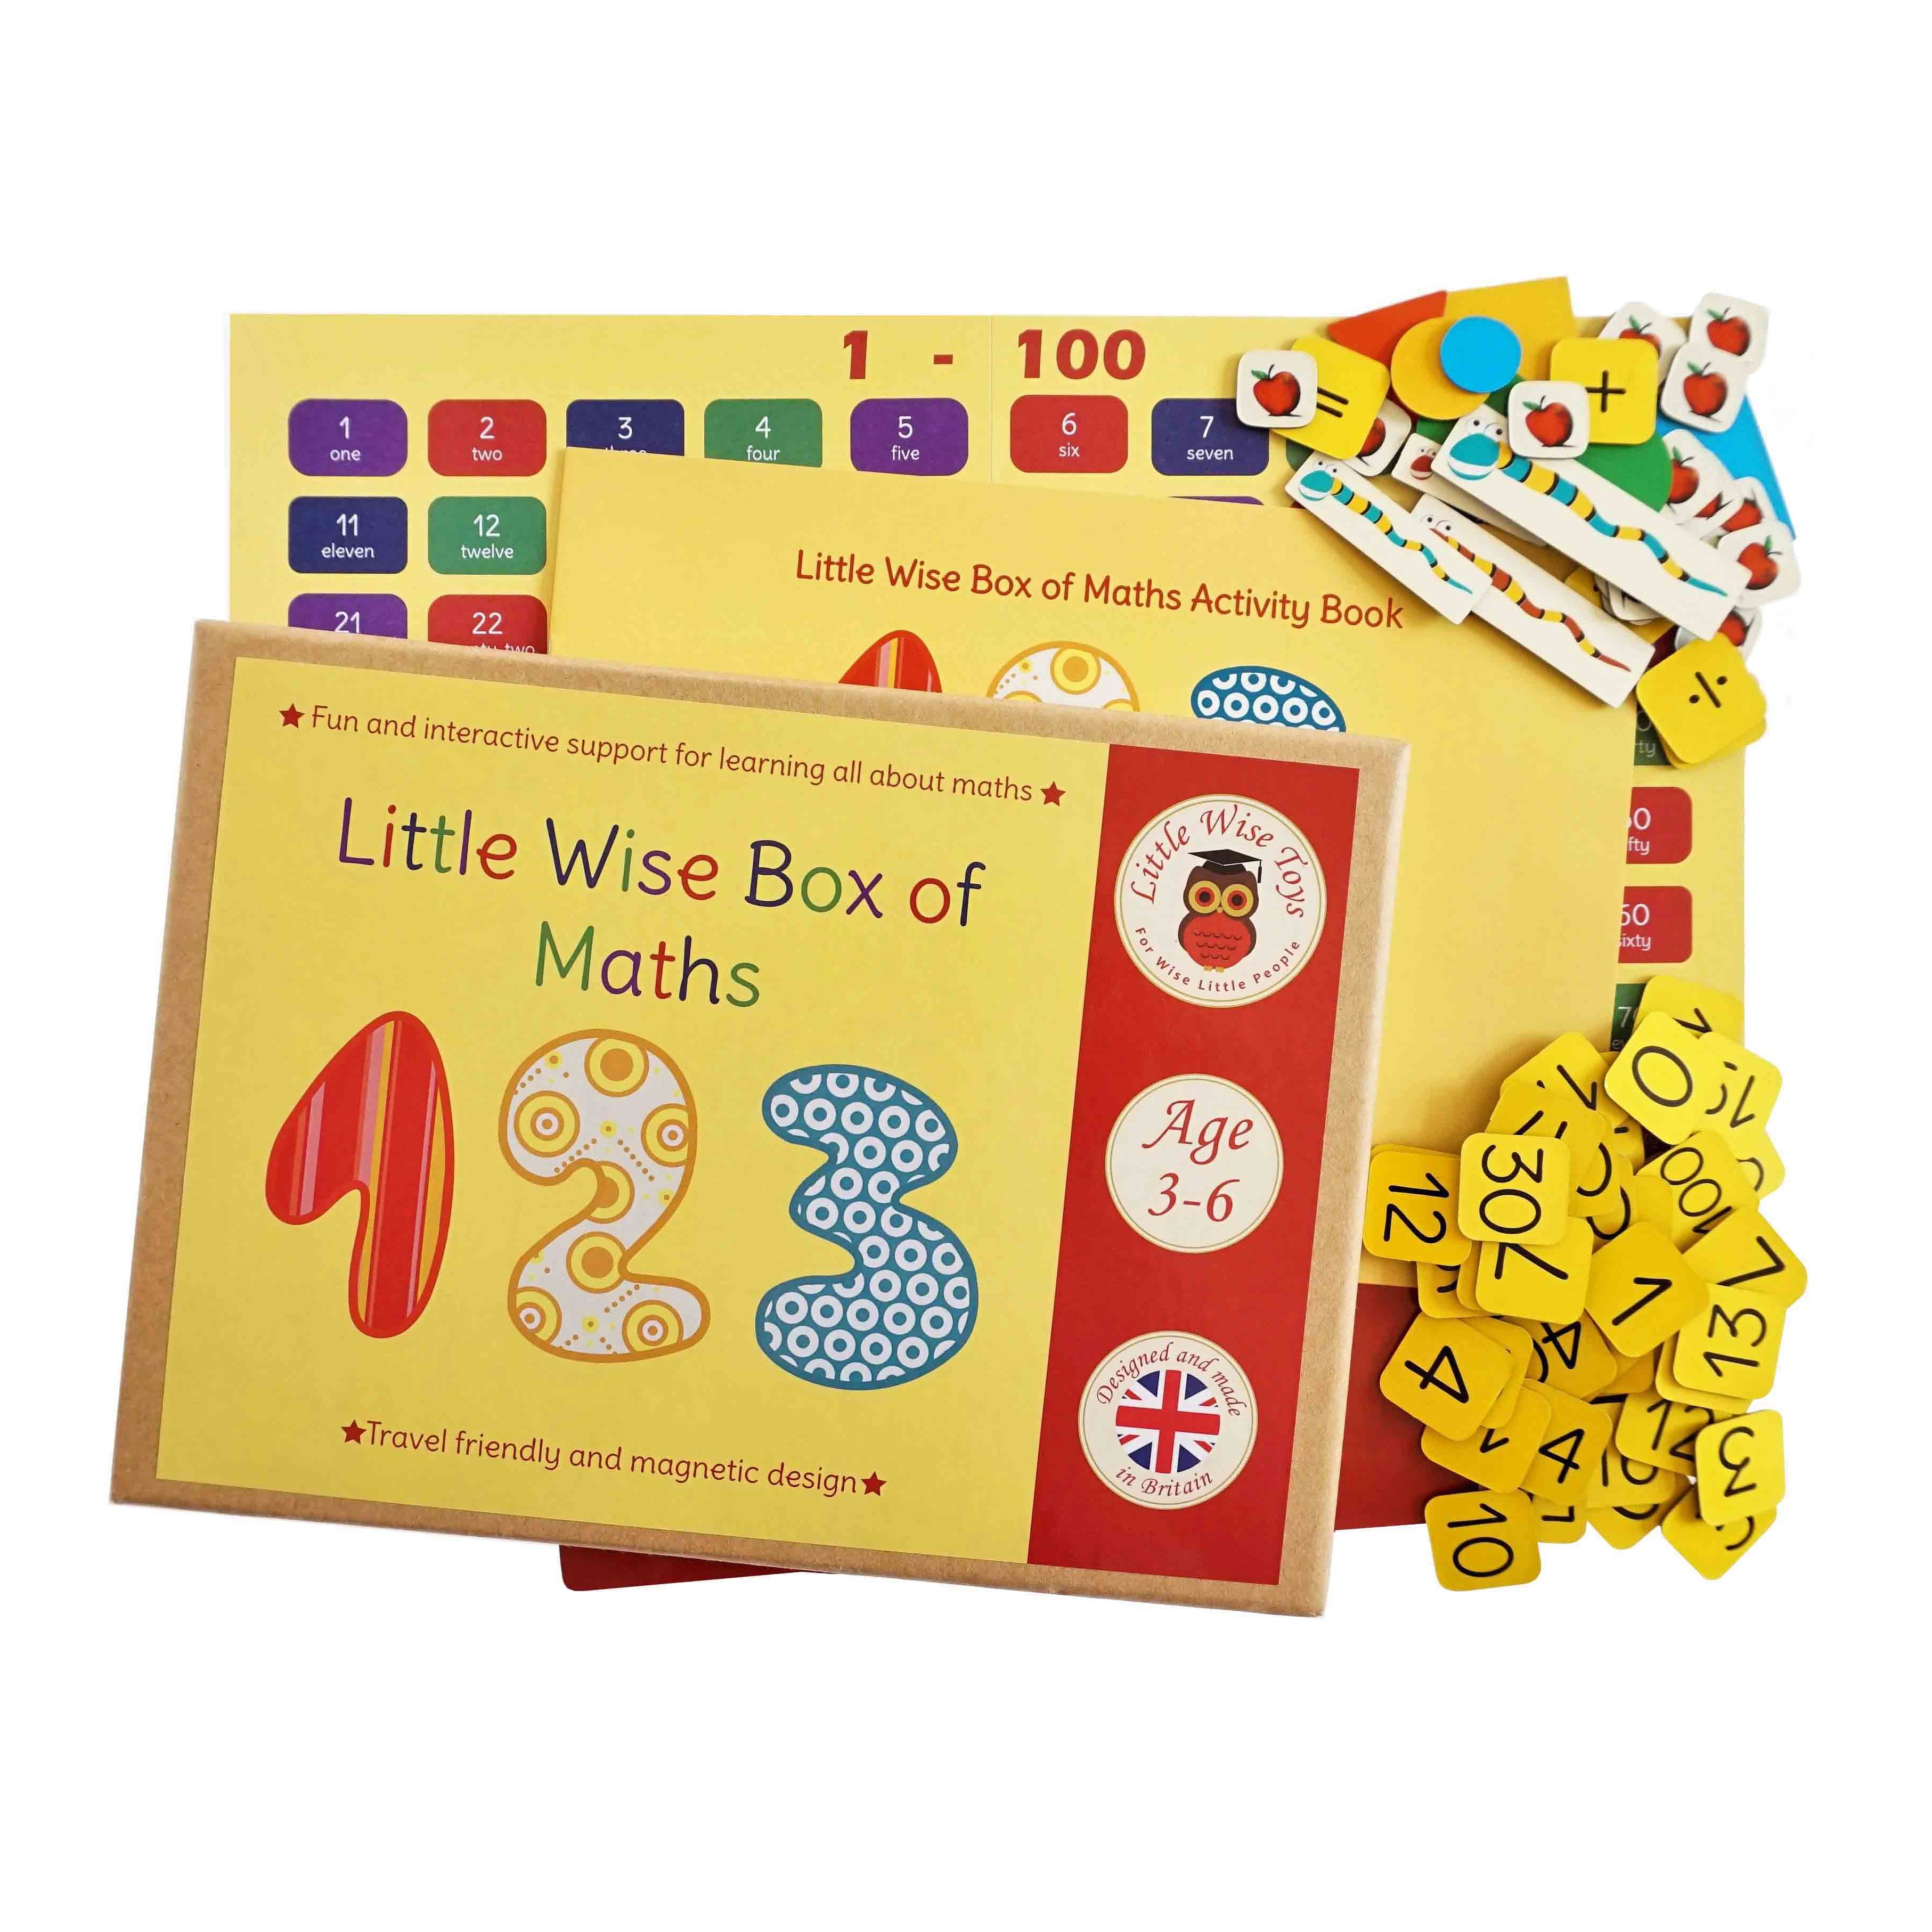 Maths and numbers educational and learning toy